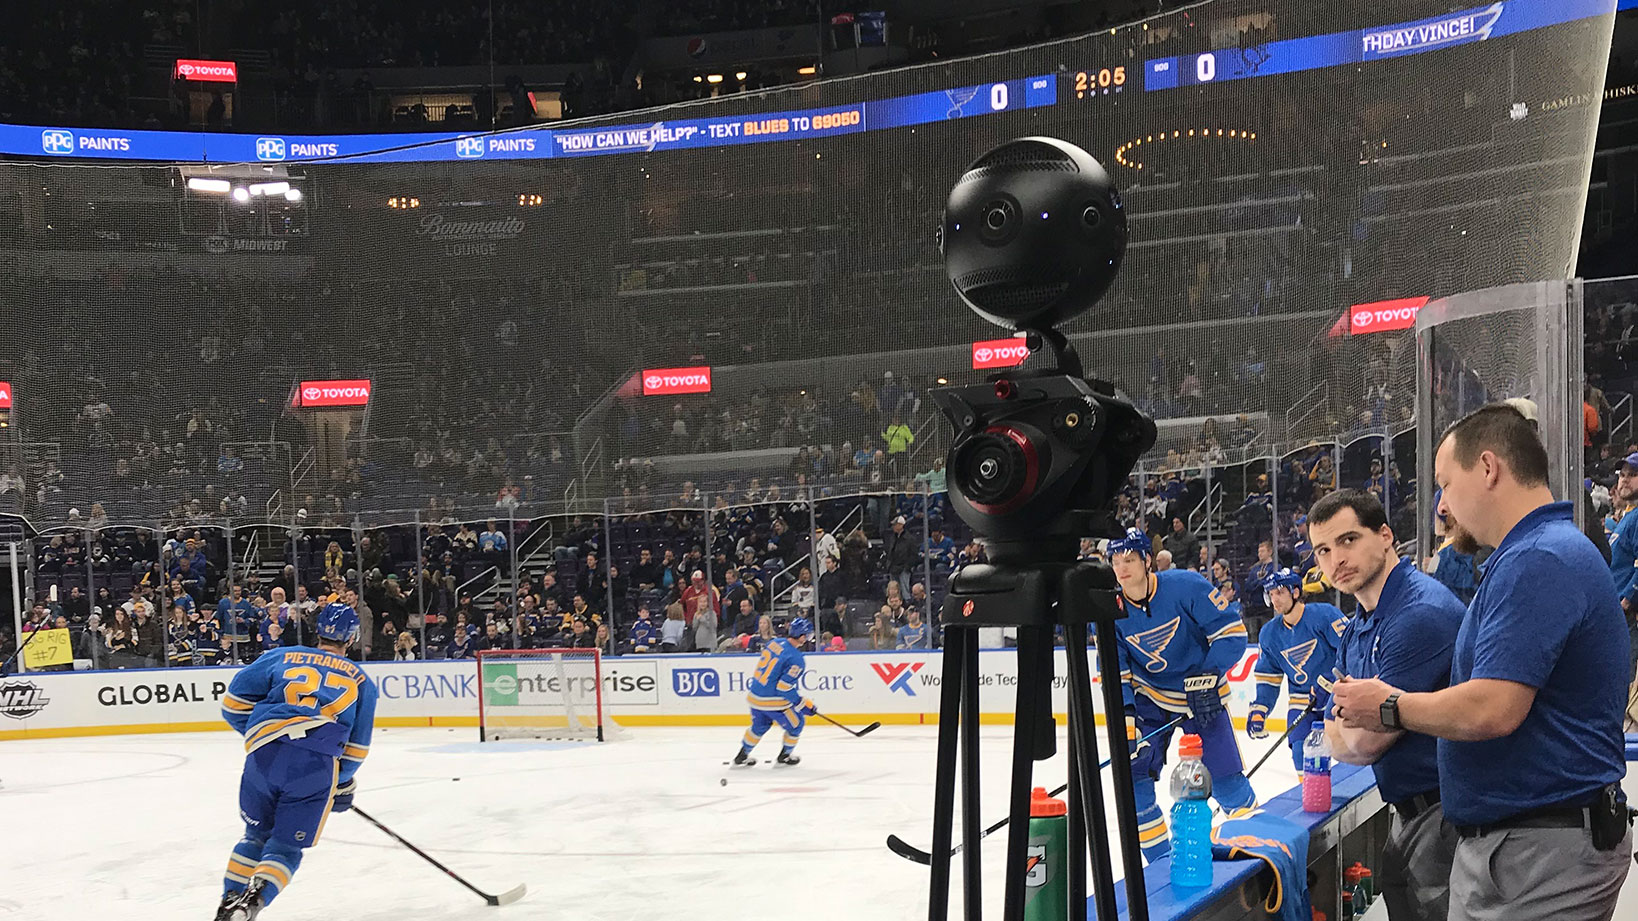 St. Louis Blues 360 virtual reality experience